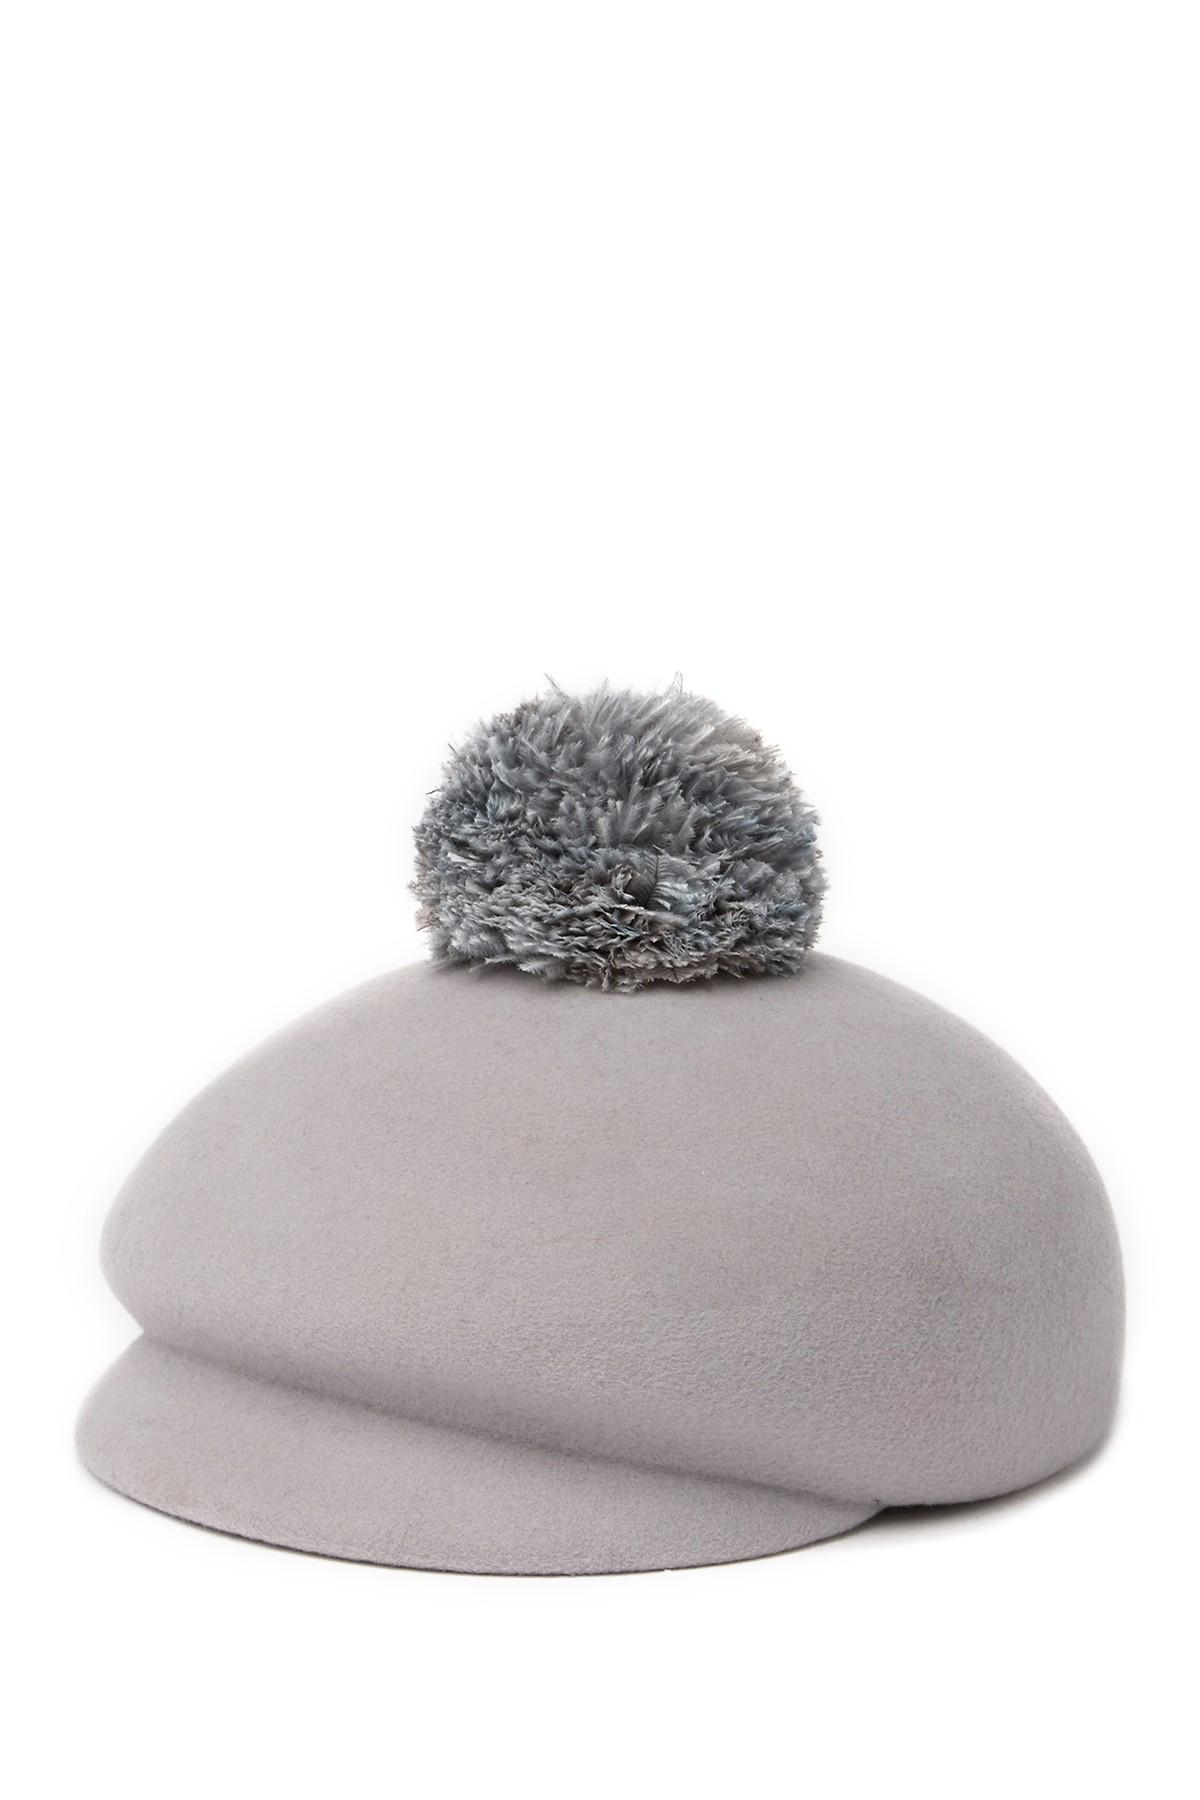 8307157f Eugenia Kim Ogden Feather Pompom Hat in Gray - Lyst